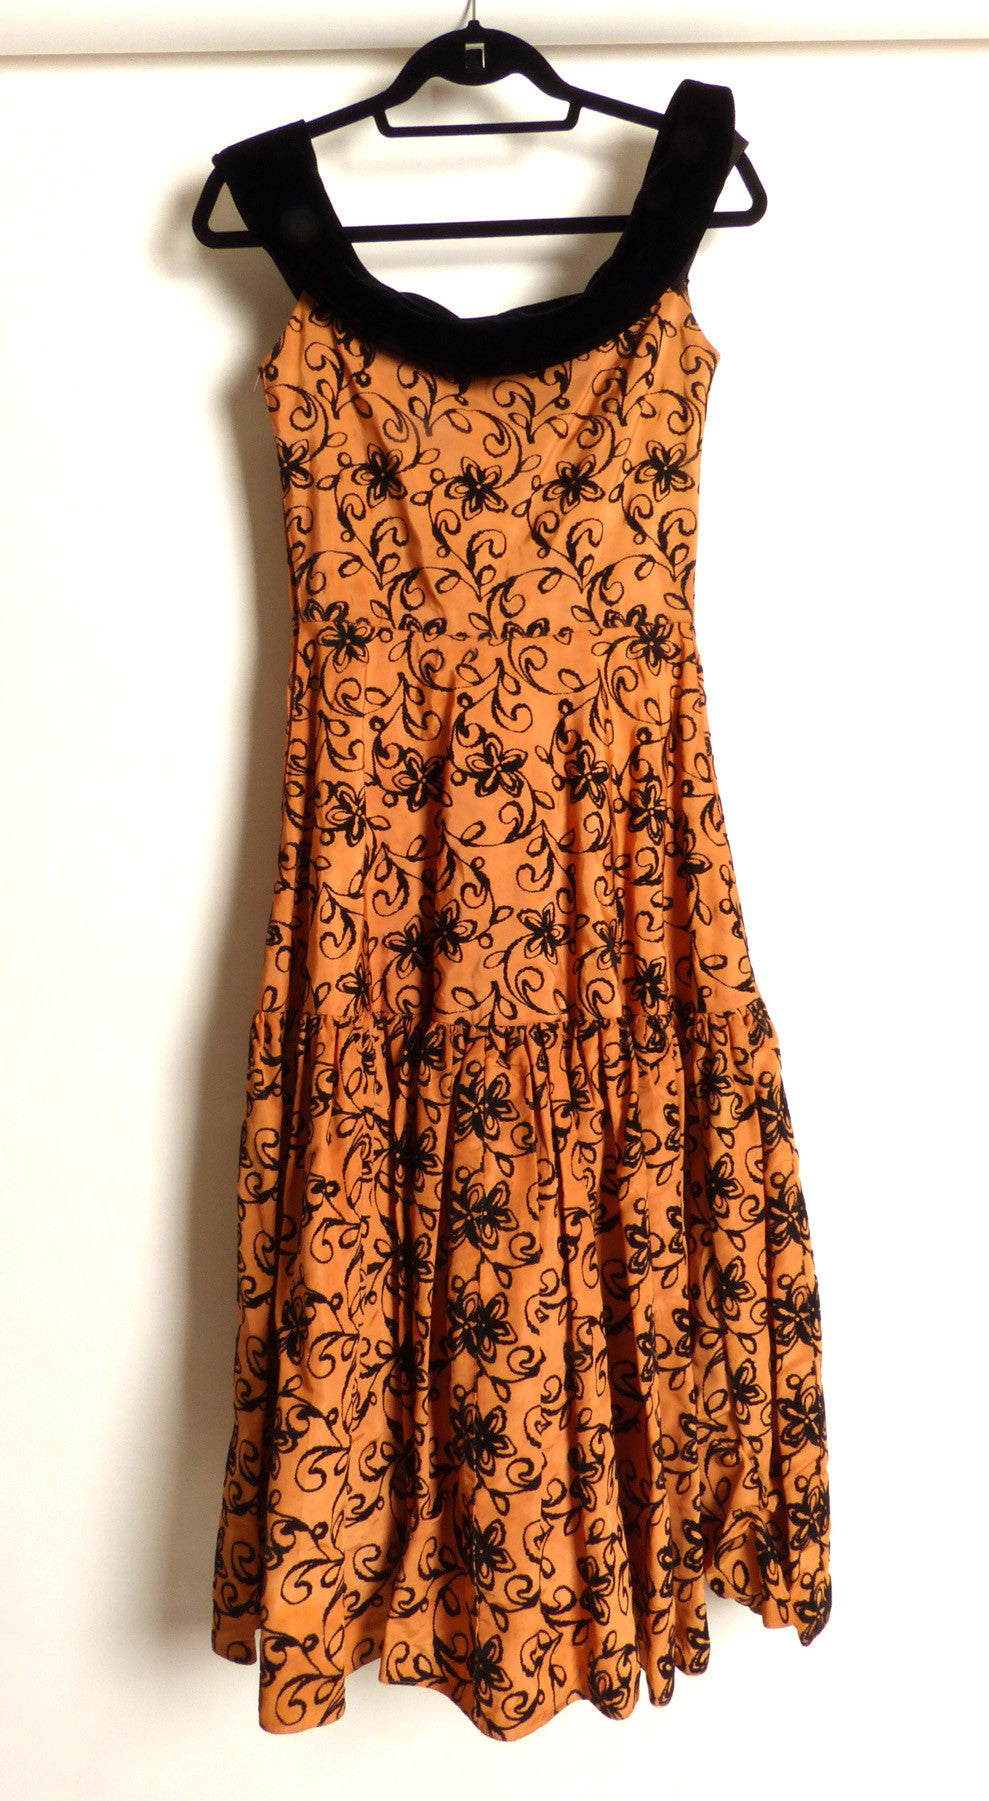 Circa 1950s Bronze Taffeta Burnout Circle Dress